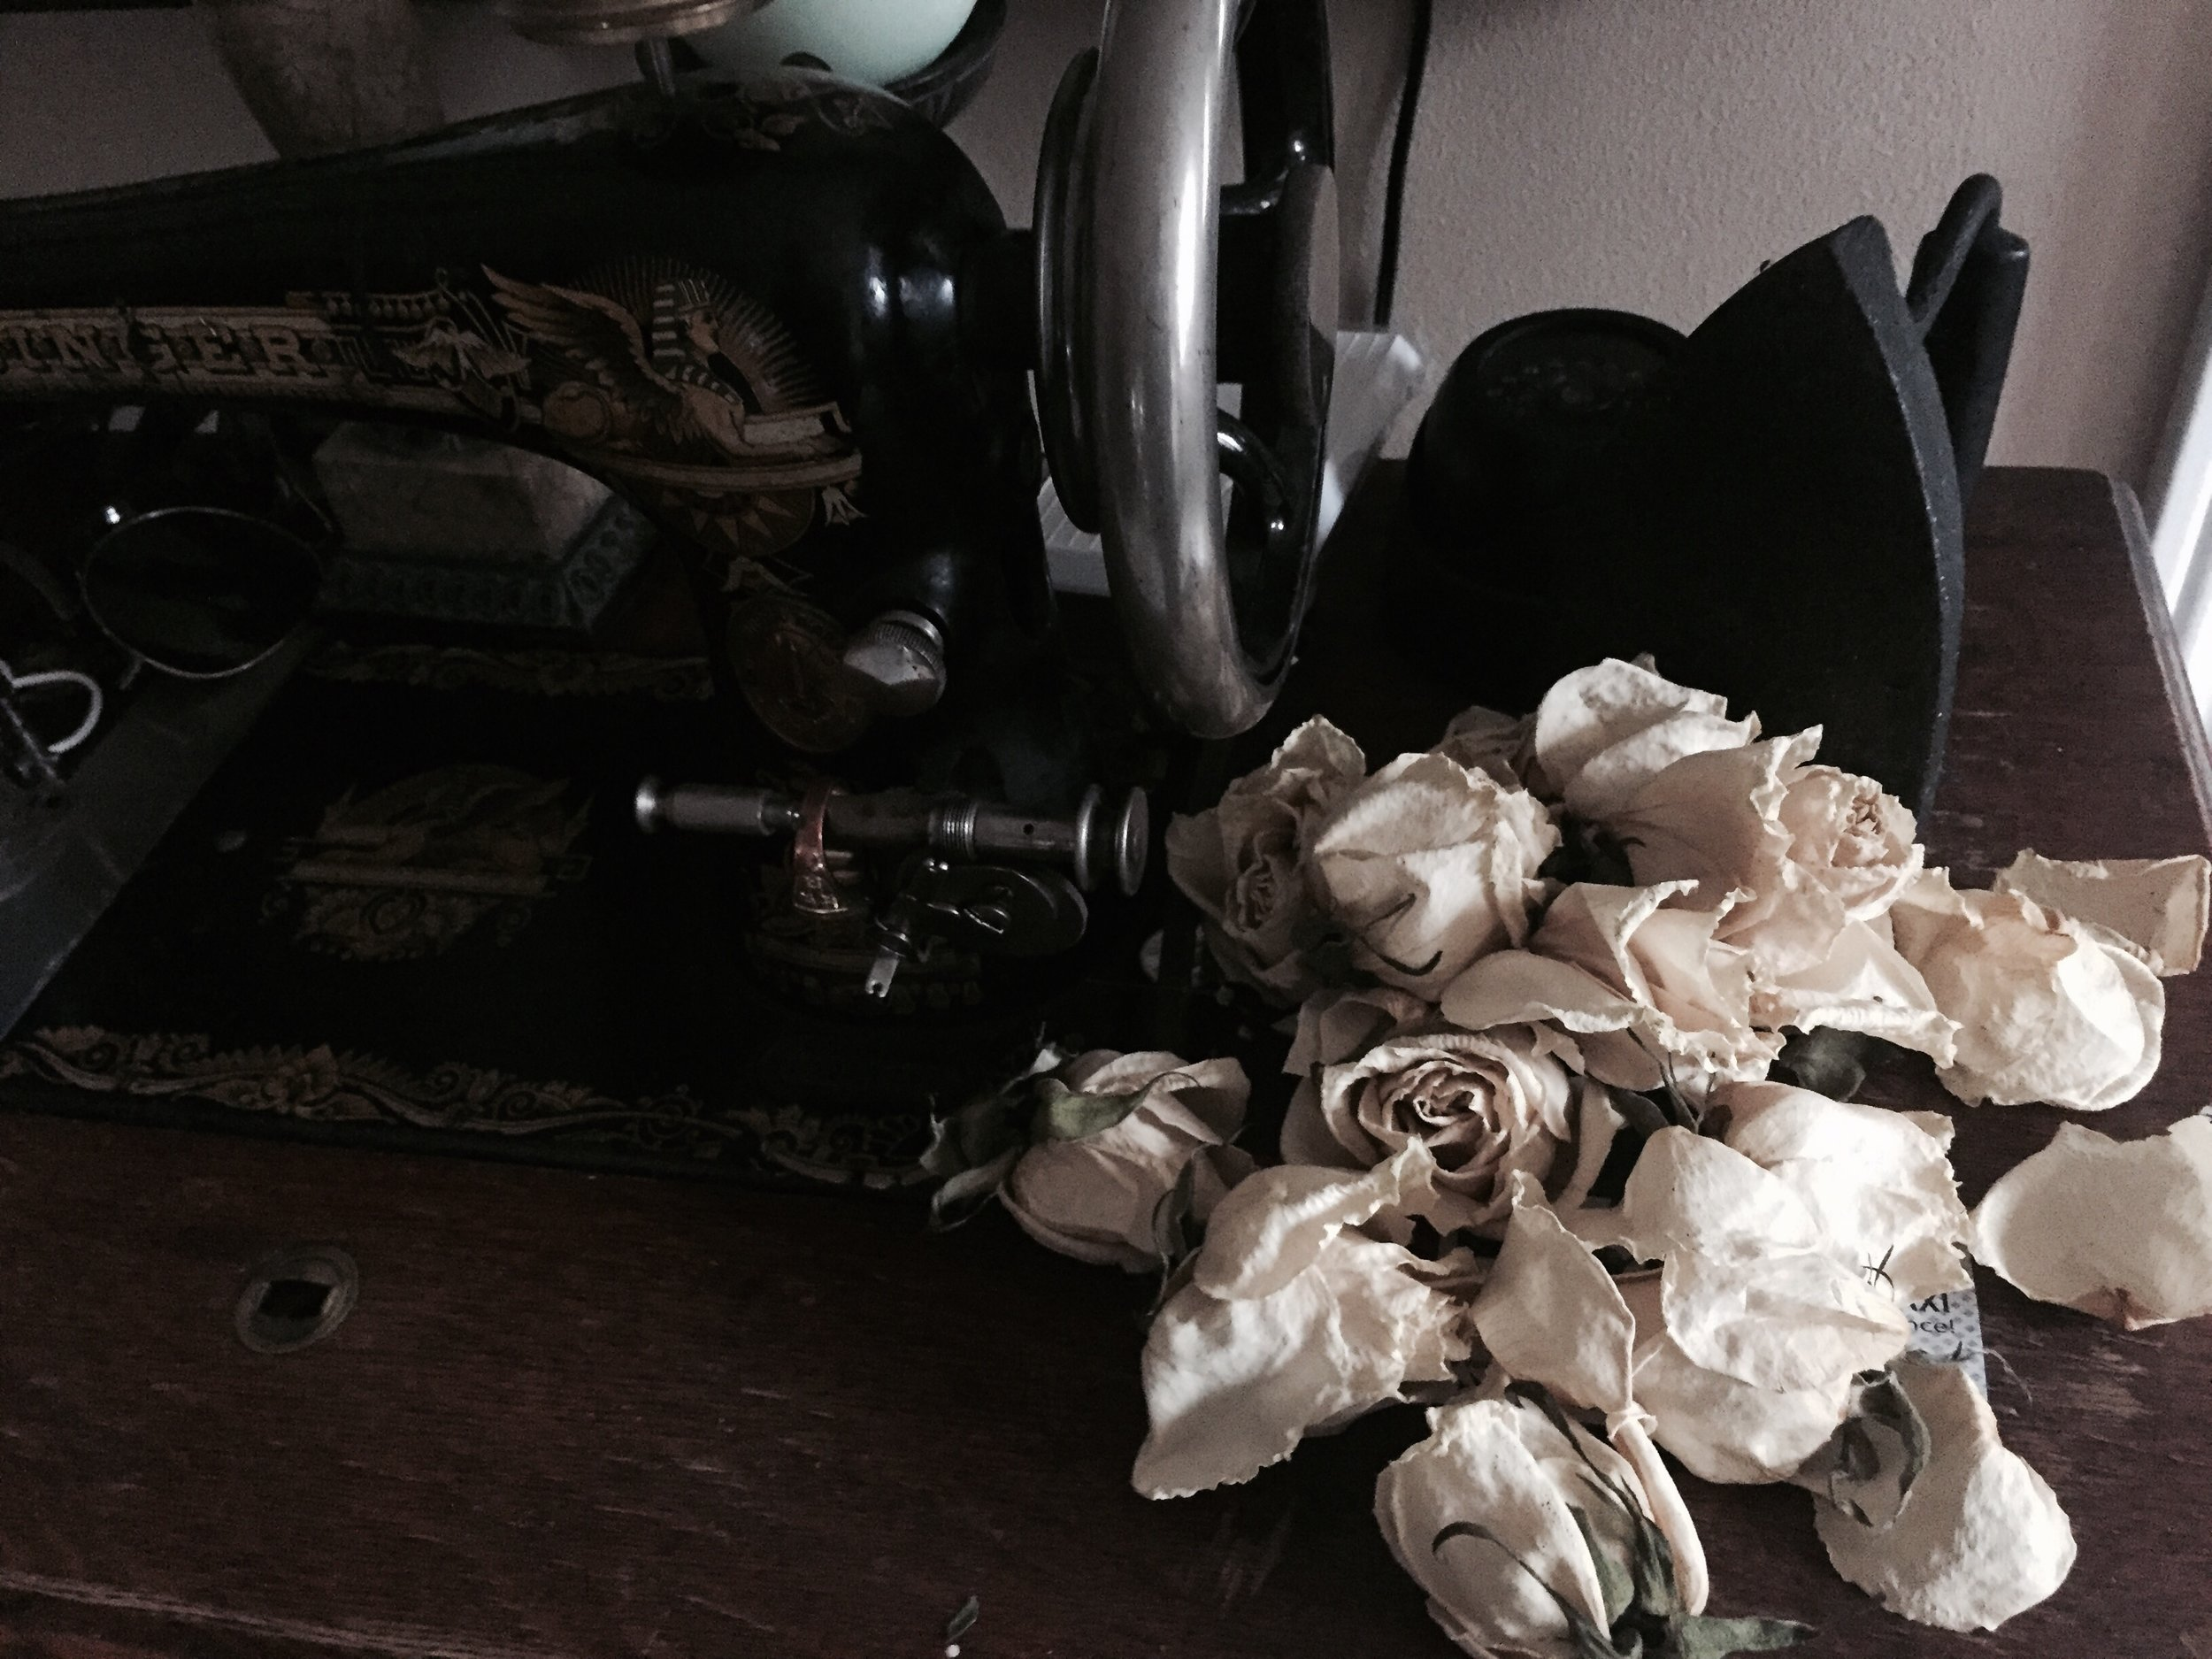 Im obsessed with decorating my house with dried roses. It adds a relaxing vintage feel that I personally resonate with